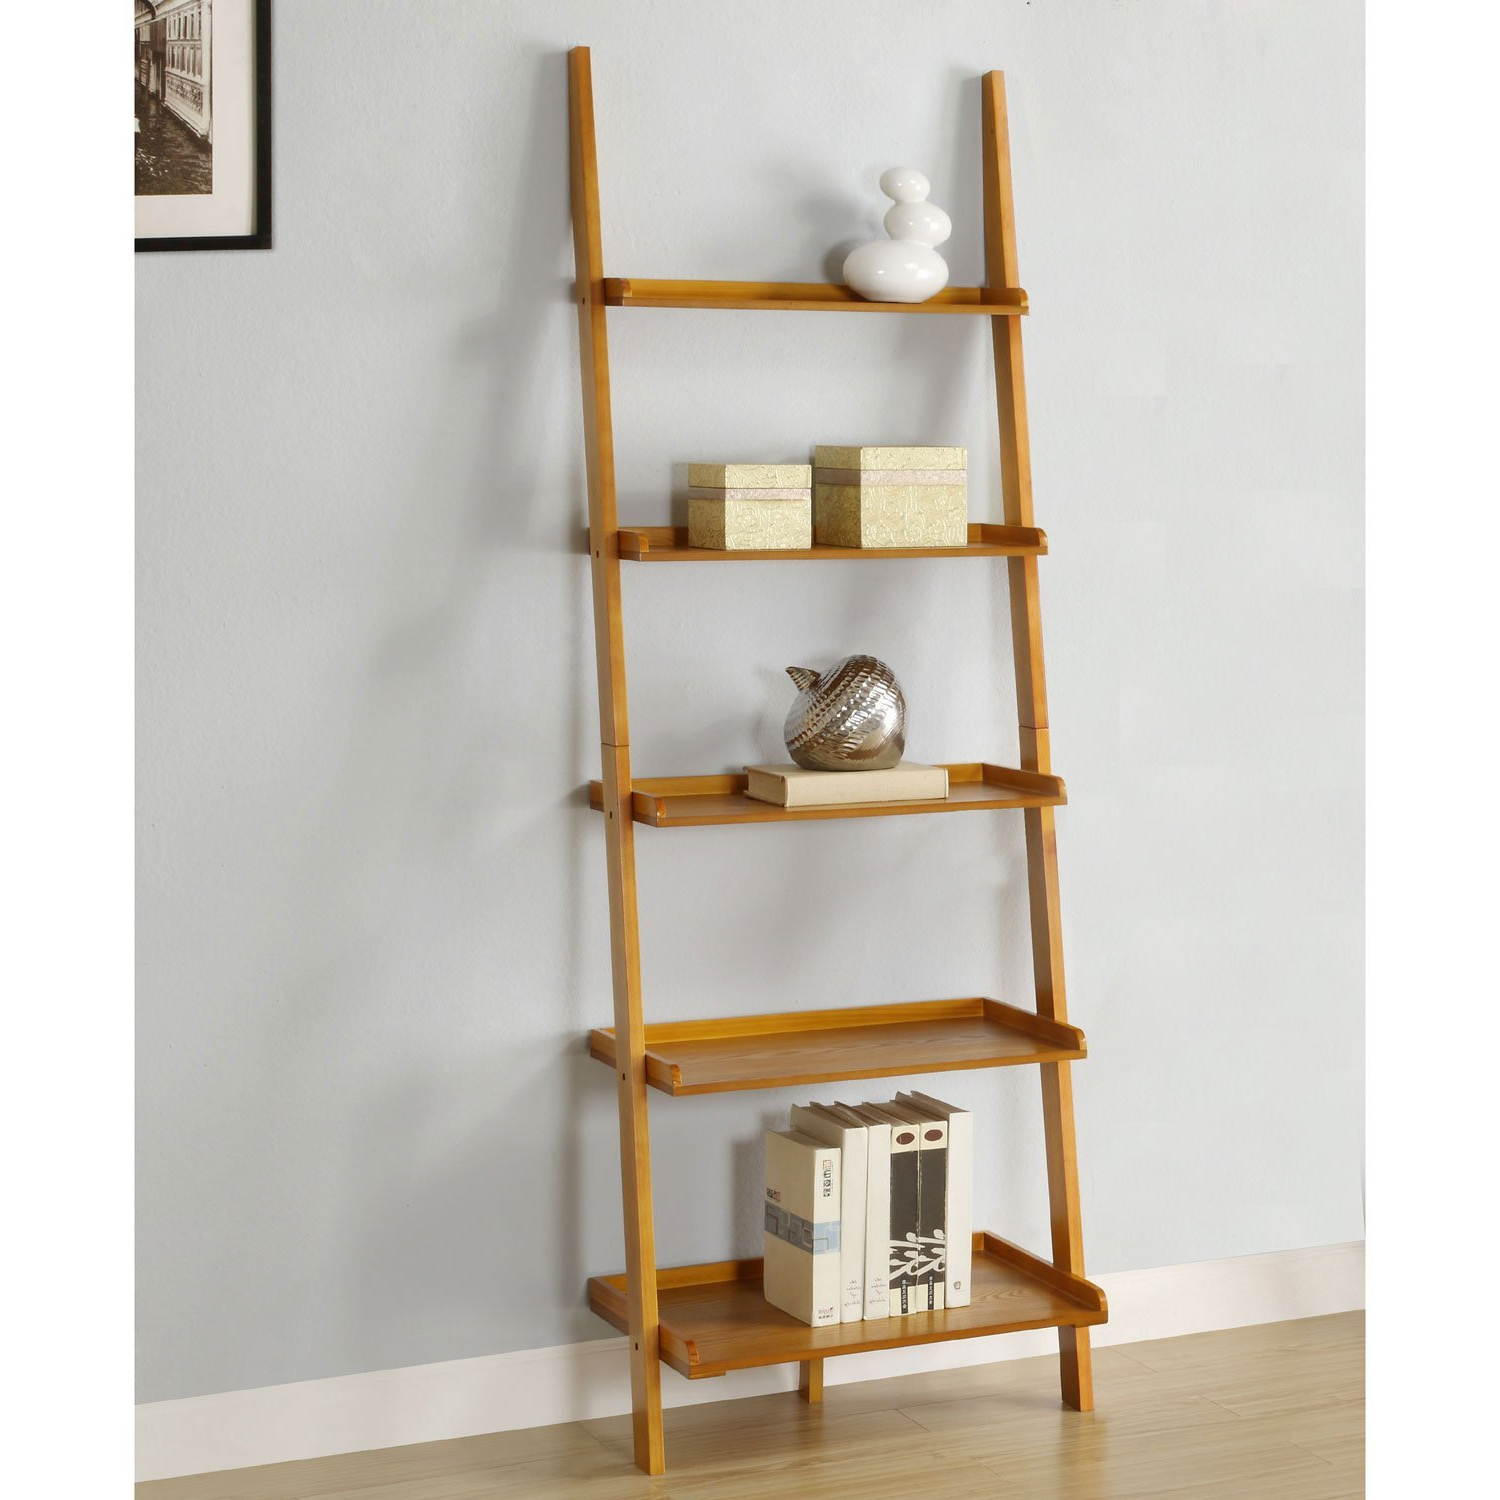 Well Liked Original Bookcase Ladder — Kokoazik Home Designs : The With Ranie Ladder Bookcases (View 18 of 20)